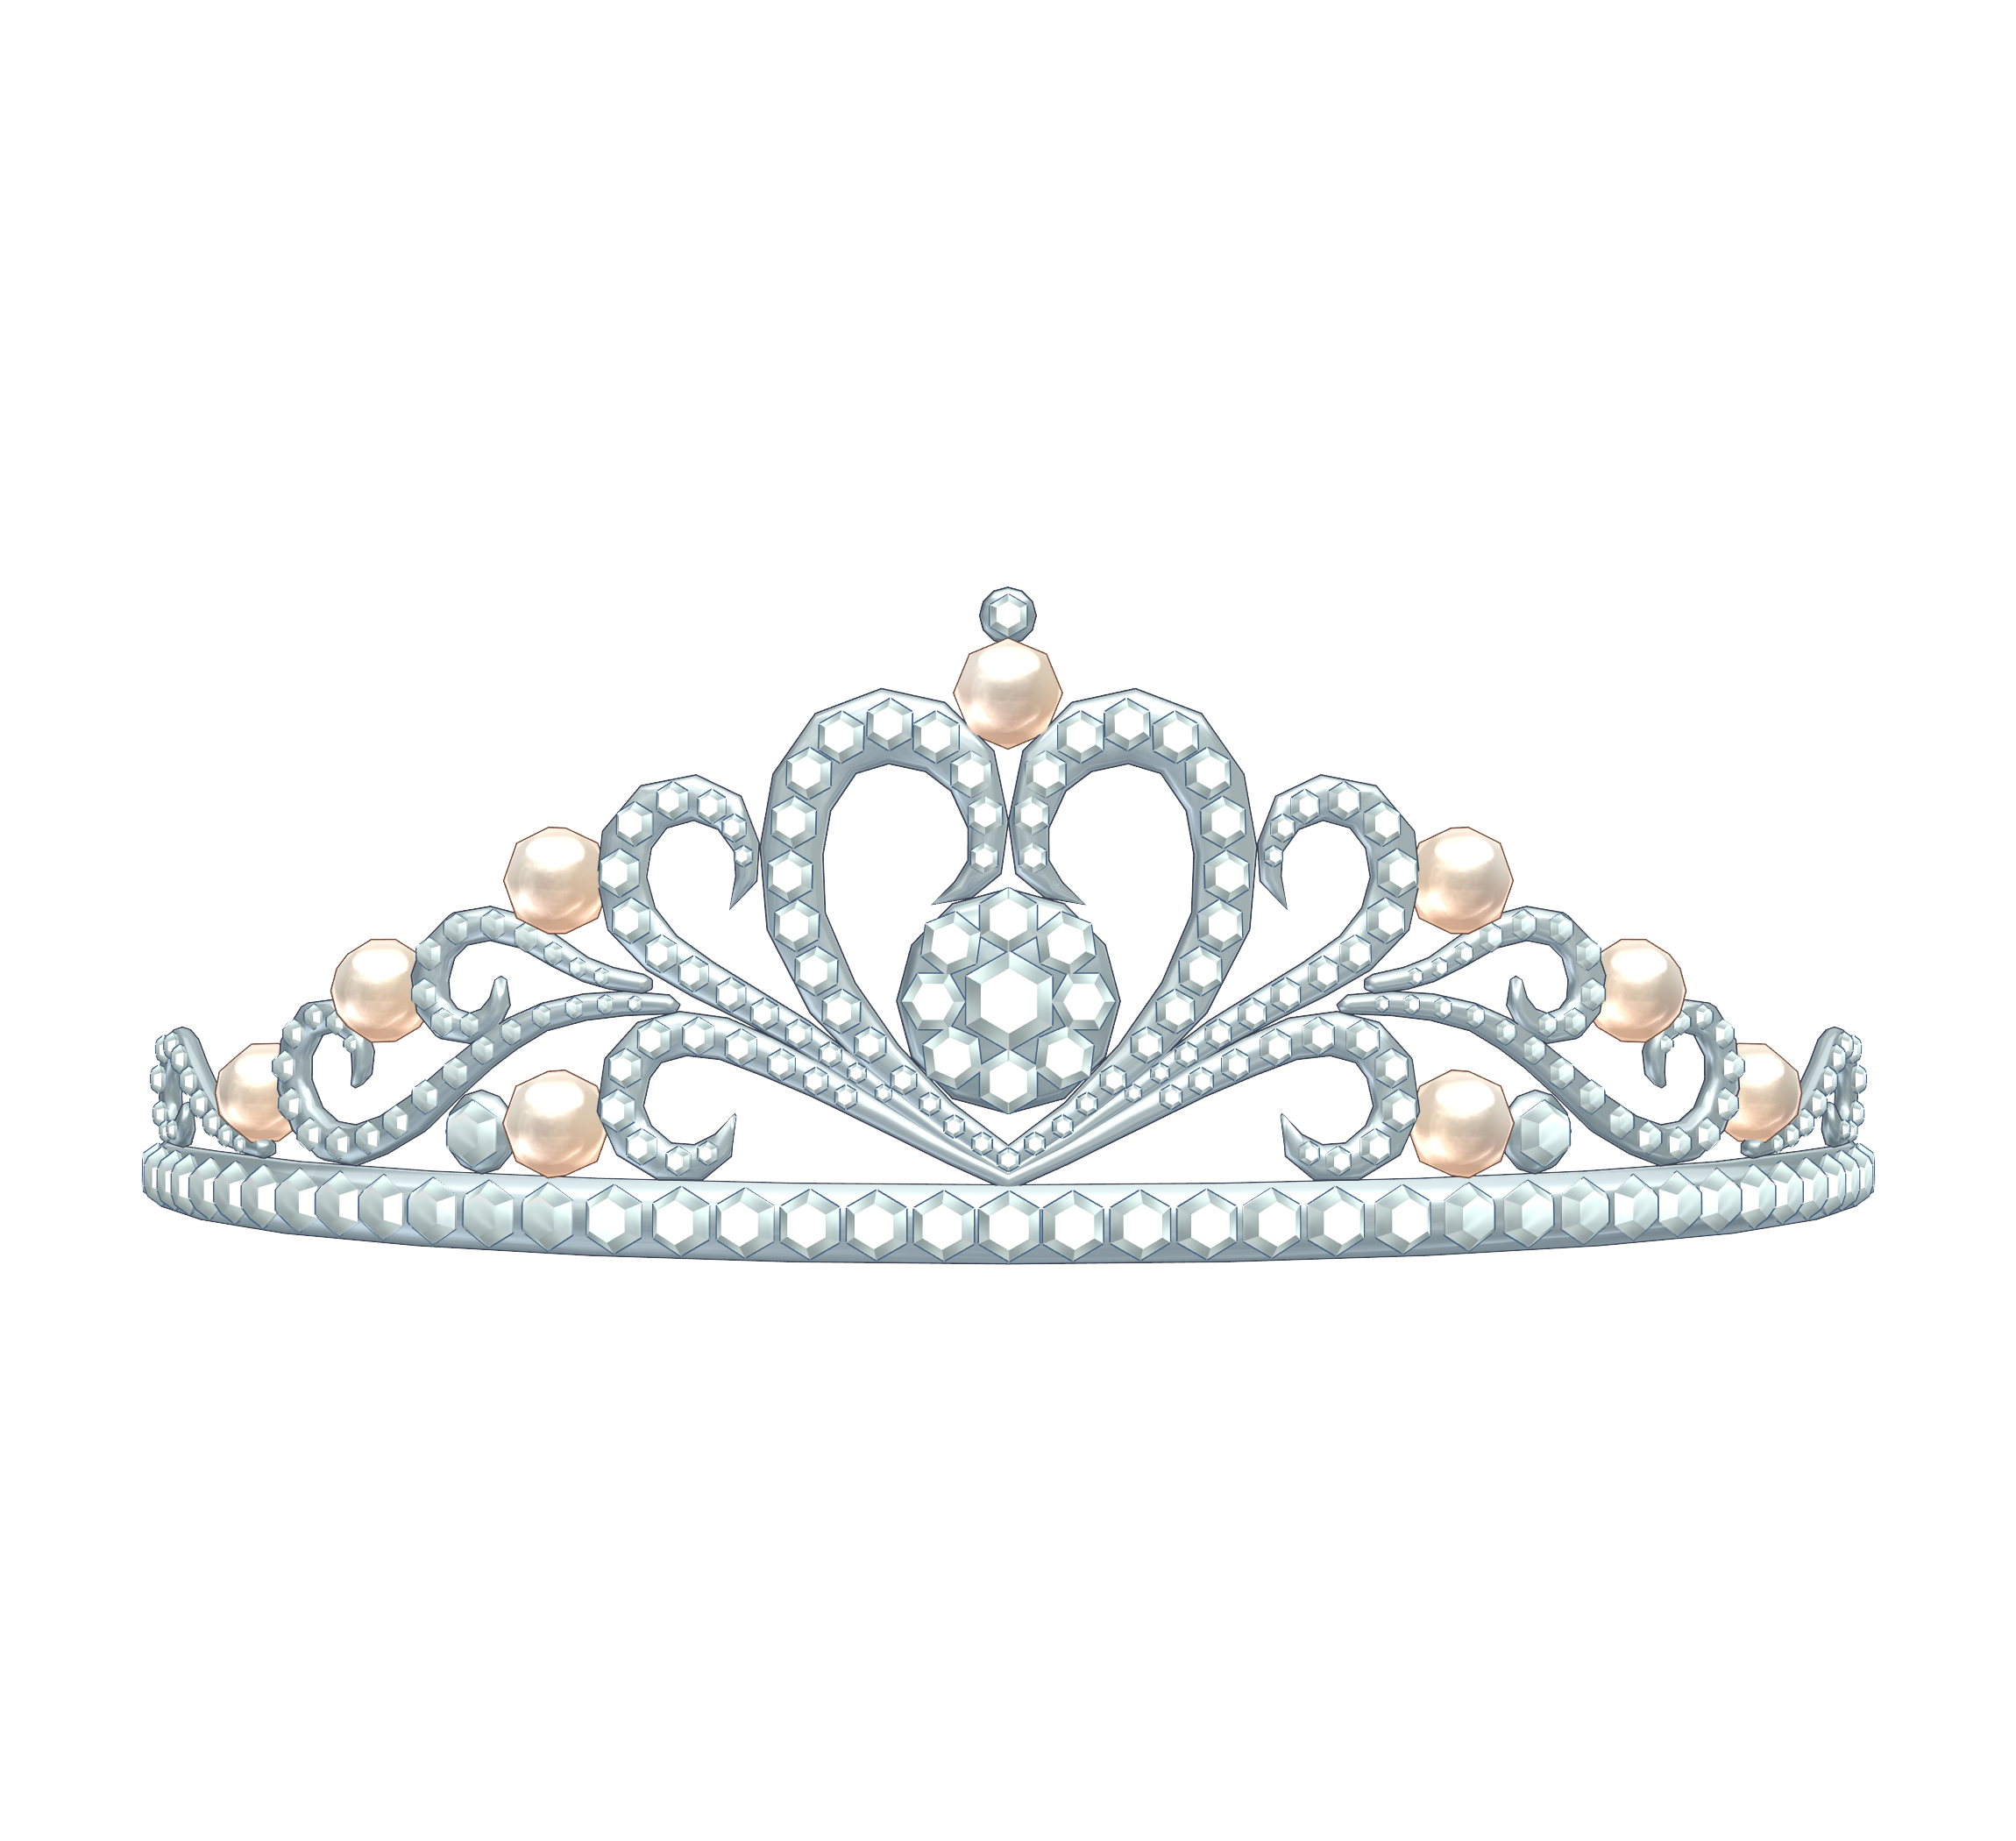 Quinceanera crown clipart 3 » Clipart Station.